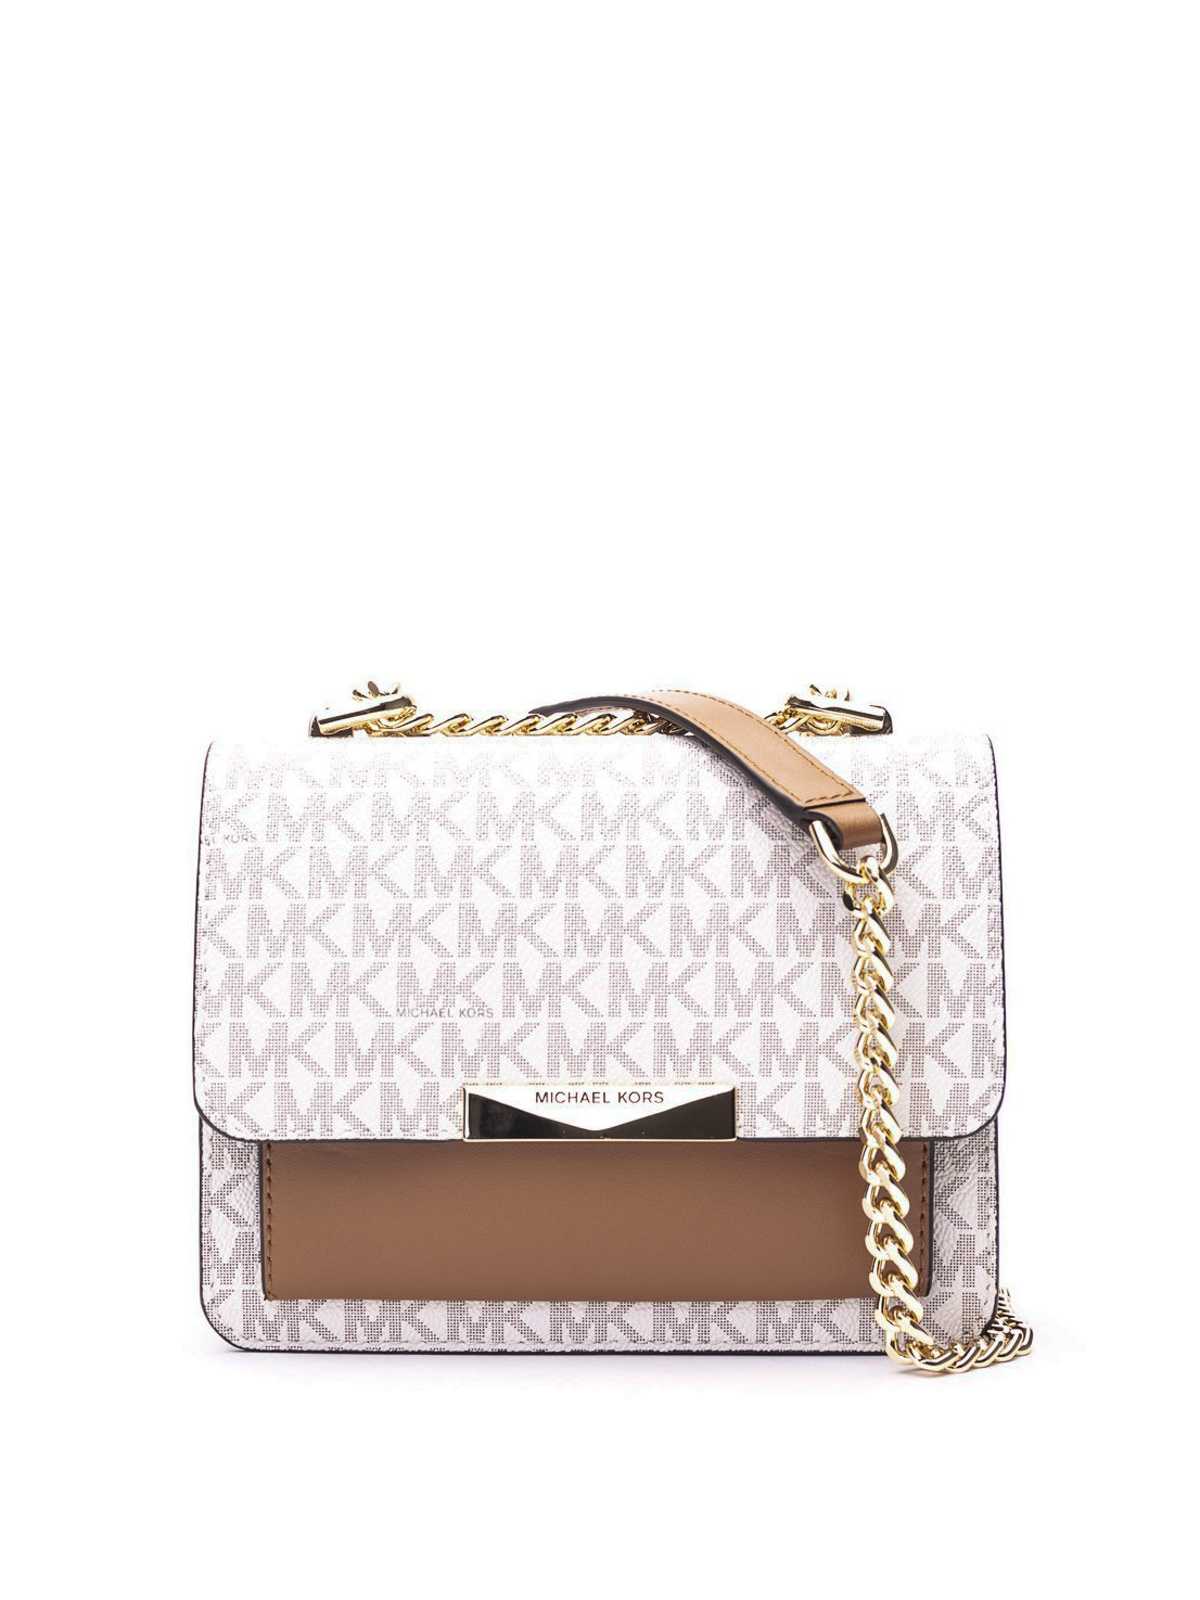 Jade Extra Small Bag In Beige